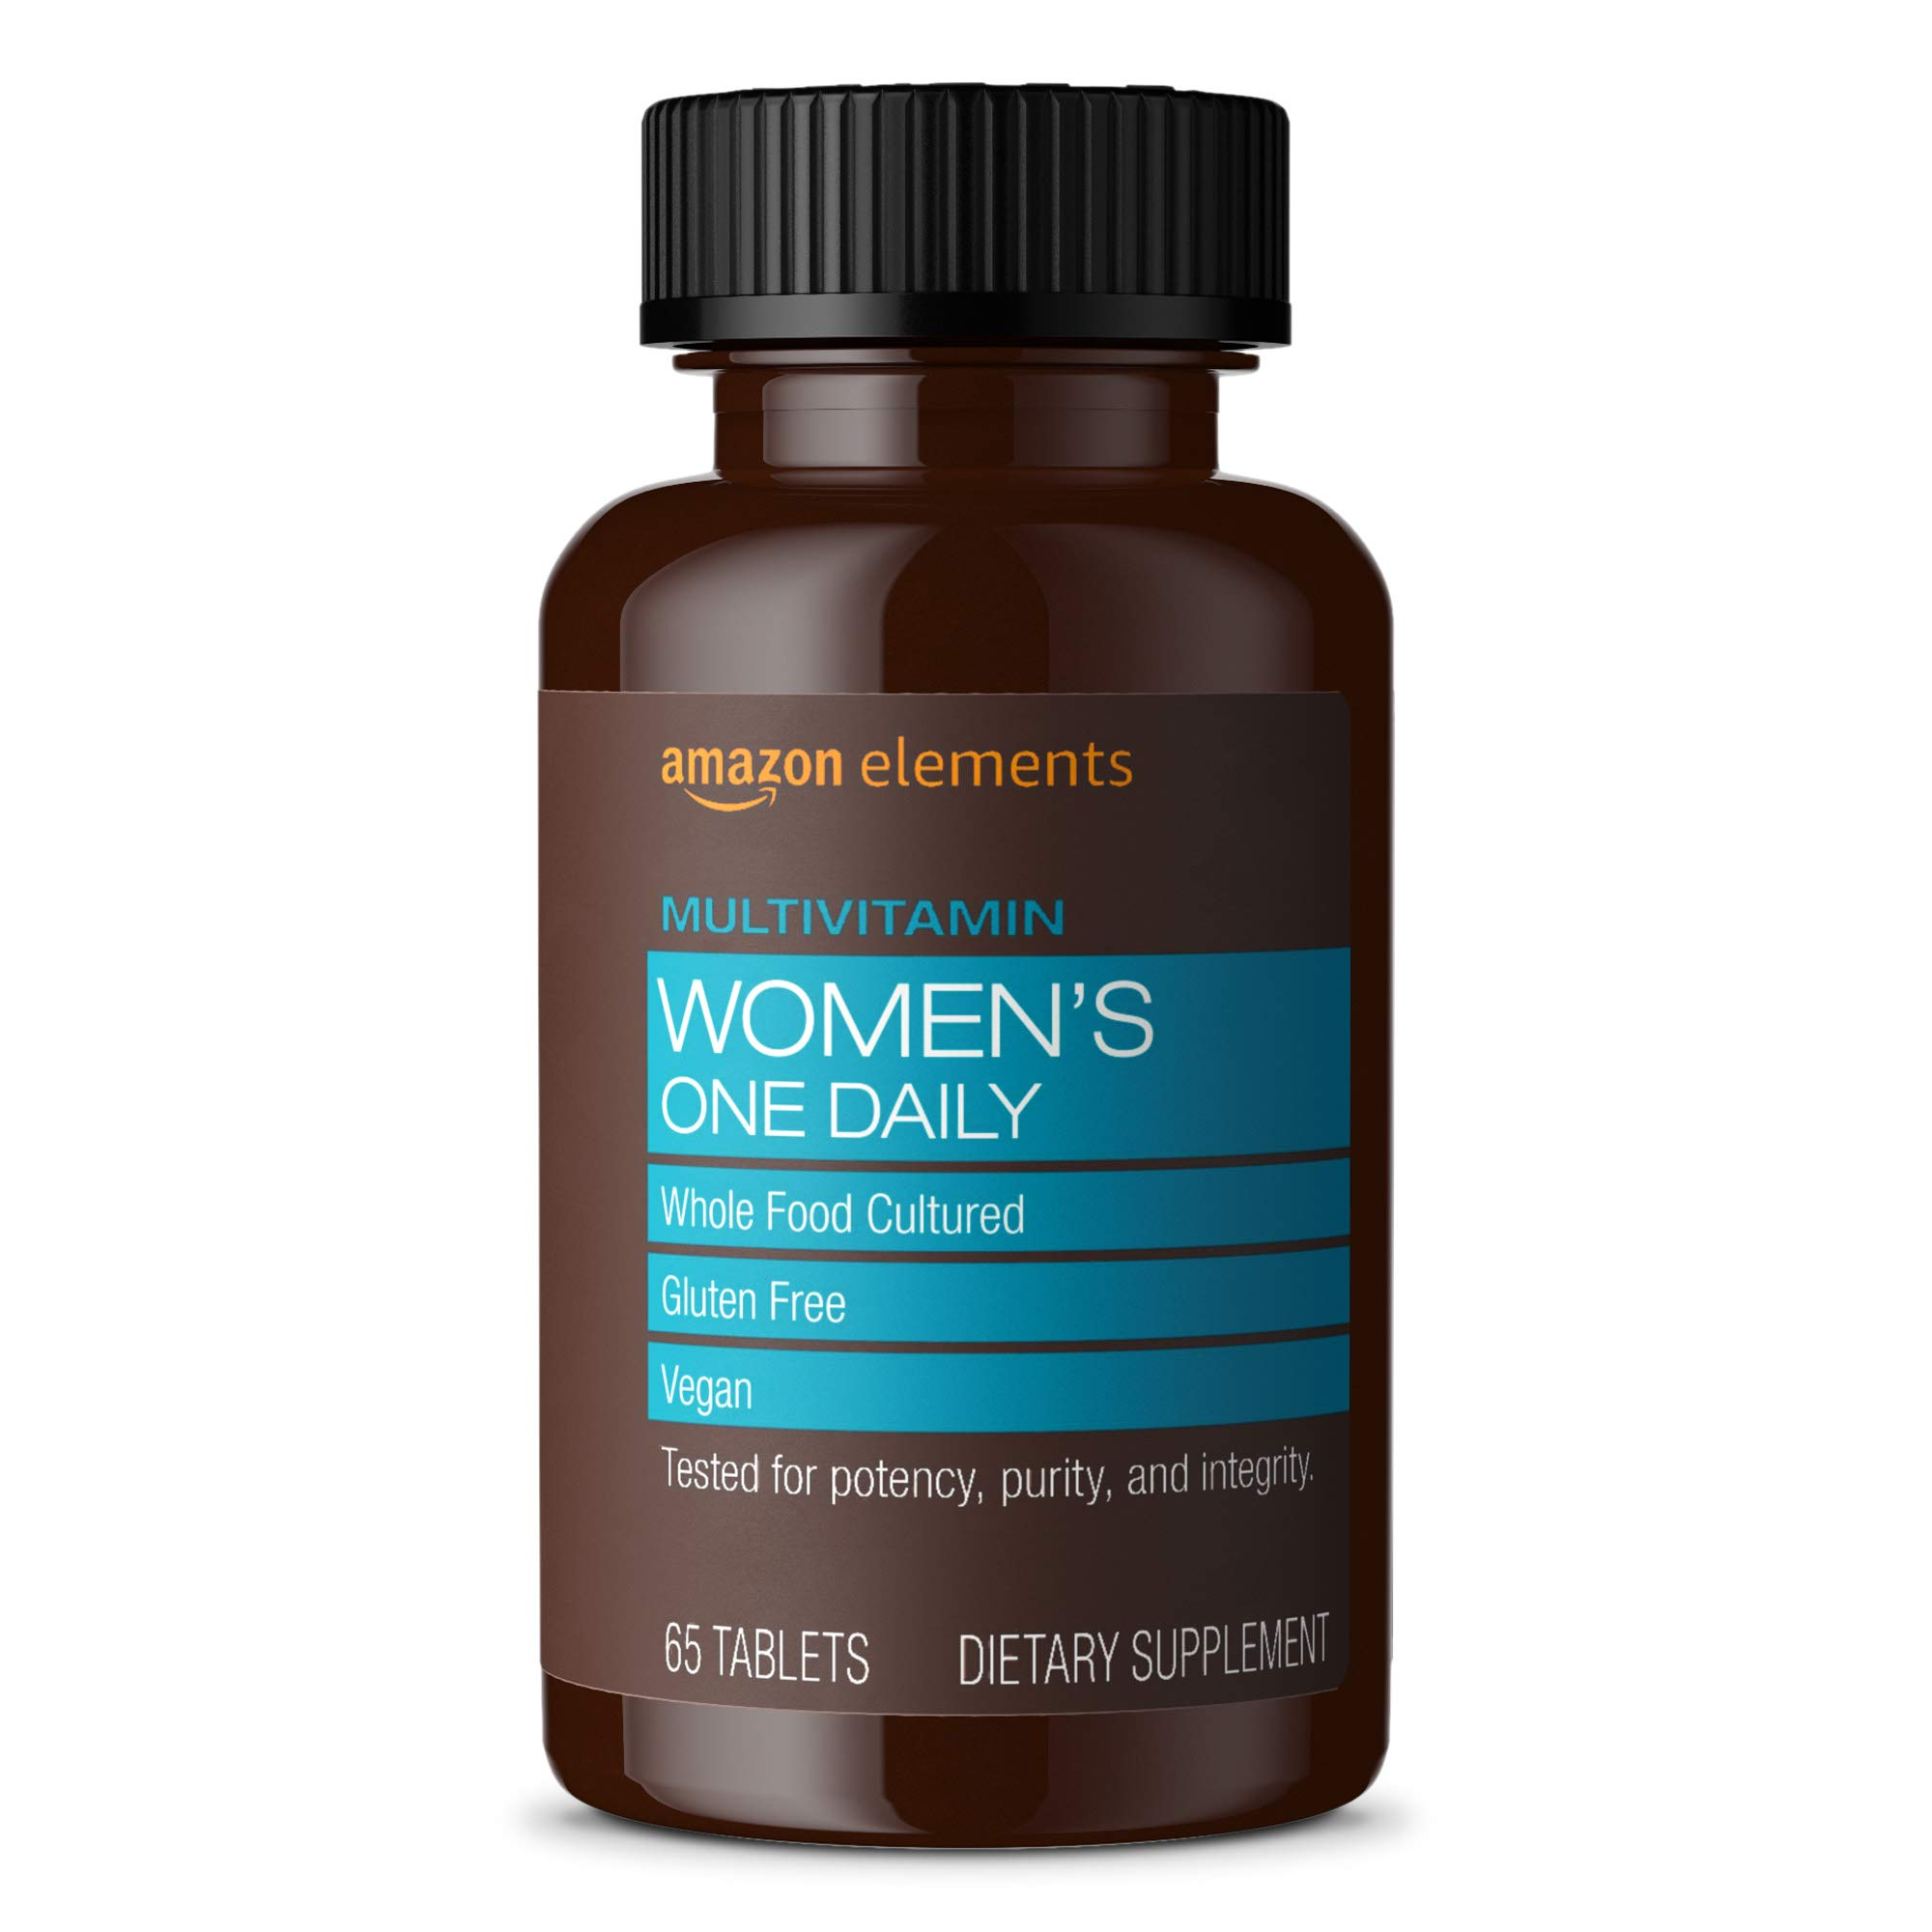 Amazon Elements Women's One Daily Multivitamin, 59% Whole Food Cultured, Vegan, 65 Tablets, 2 month supply (Packaging may vary)